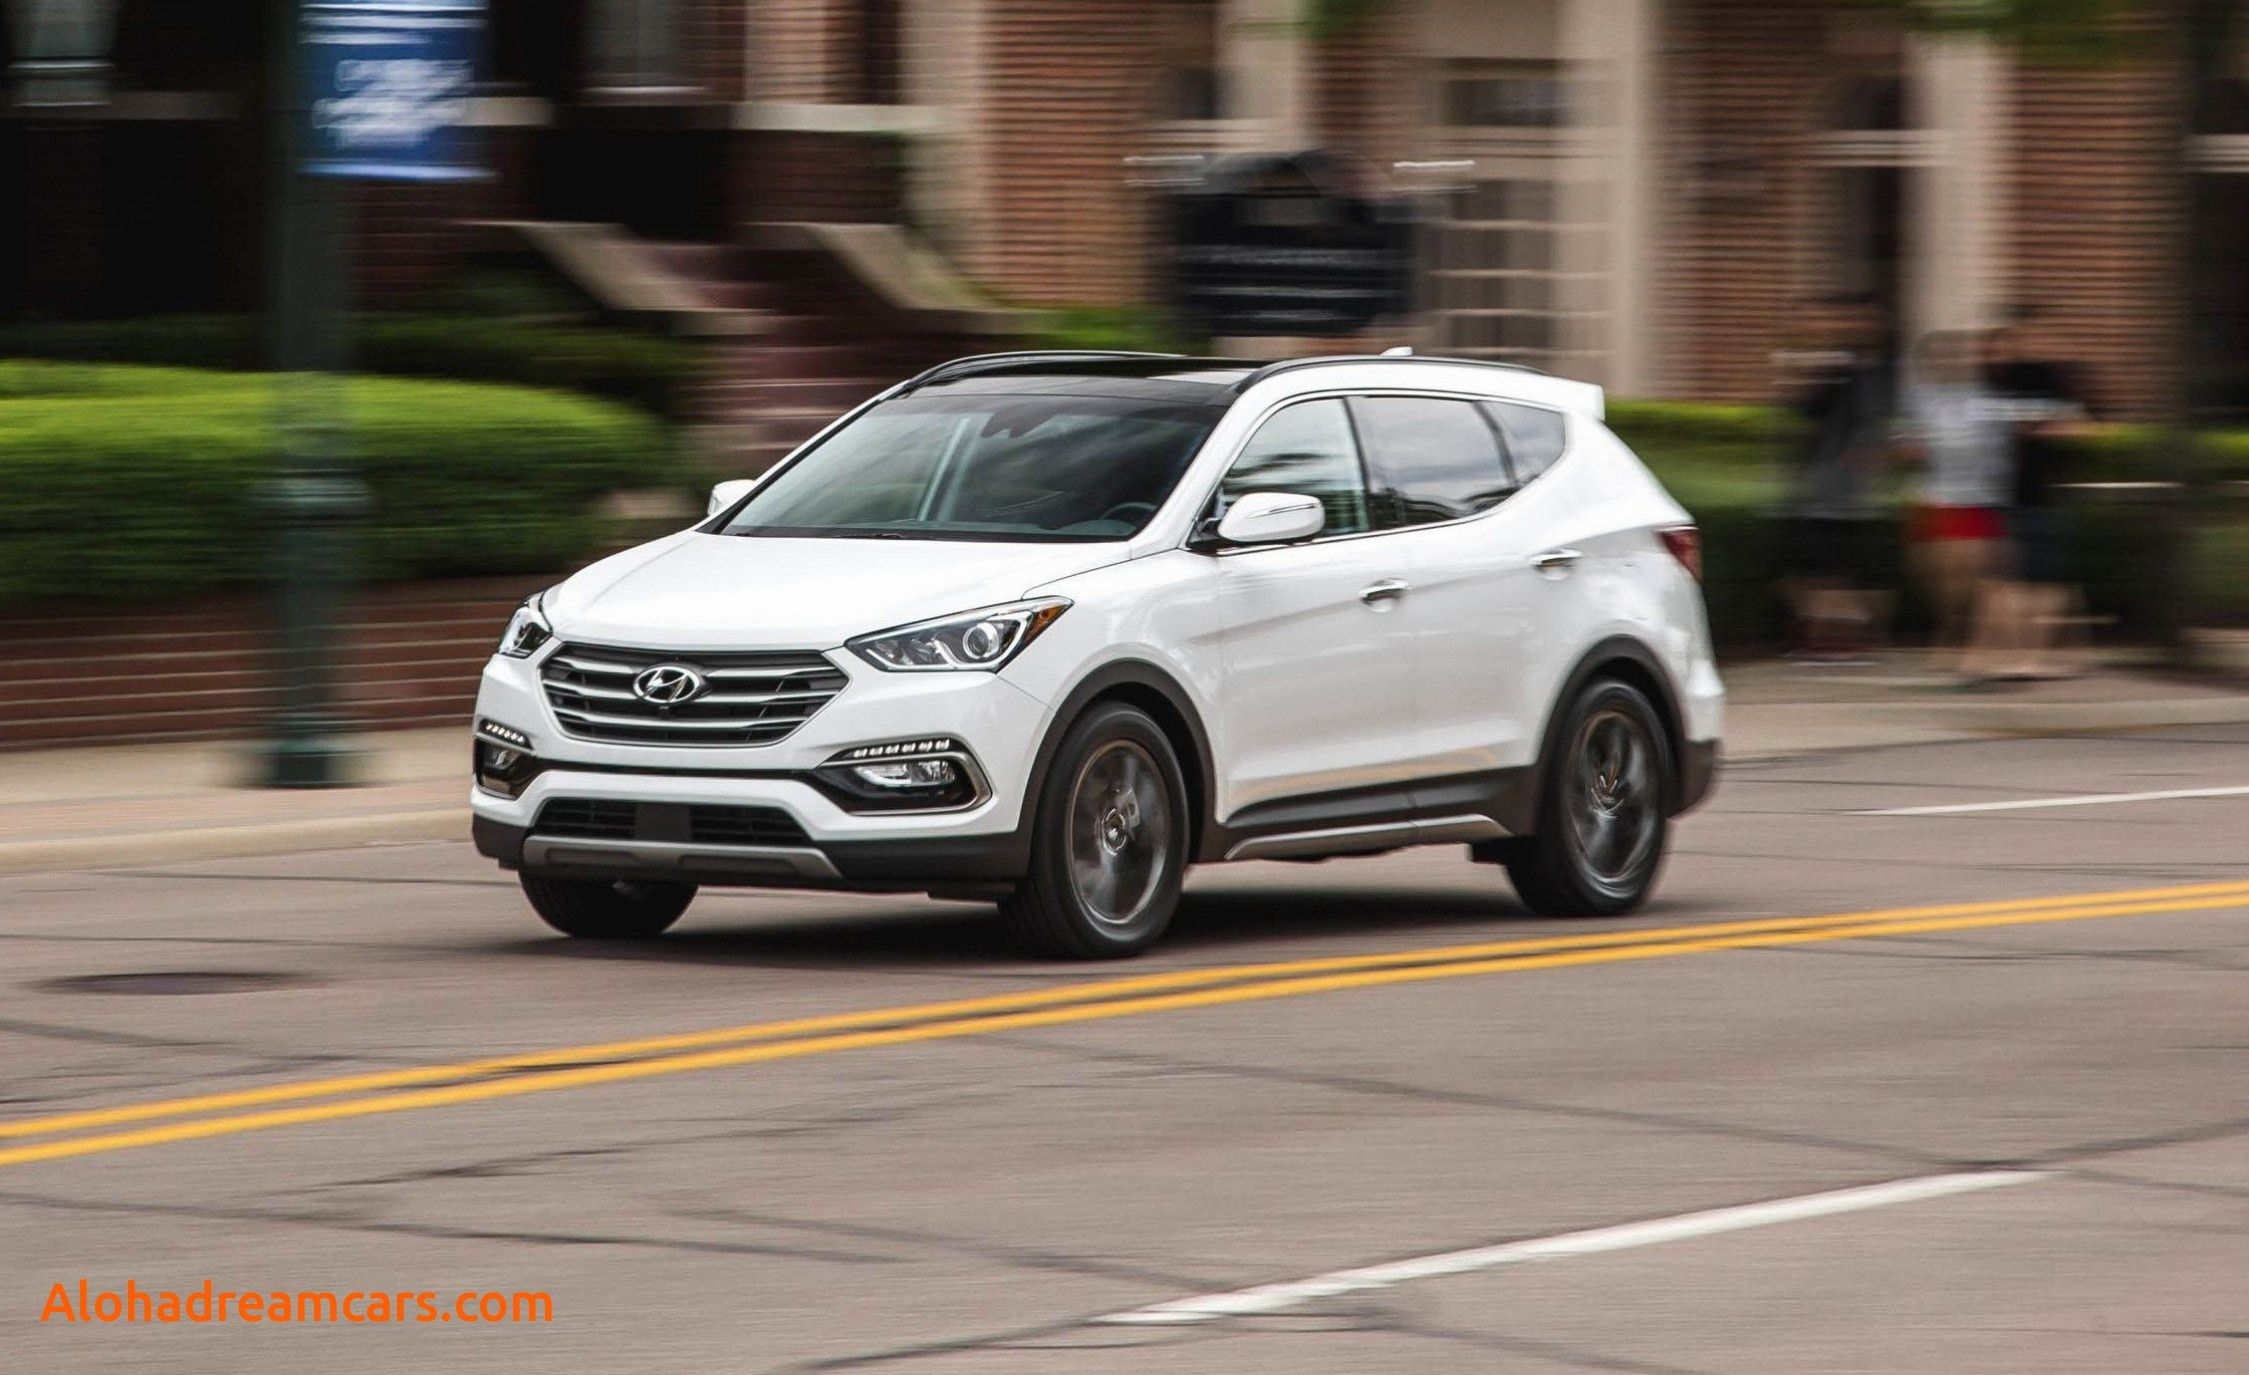 2019 Hyundai Tucson Fuel Cell Check More At Http Www Autocarblog Club 2018 04 28 2019 Hyundai Tucson Fuel Cell